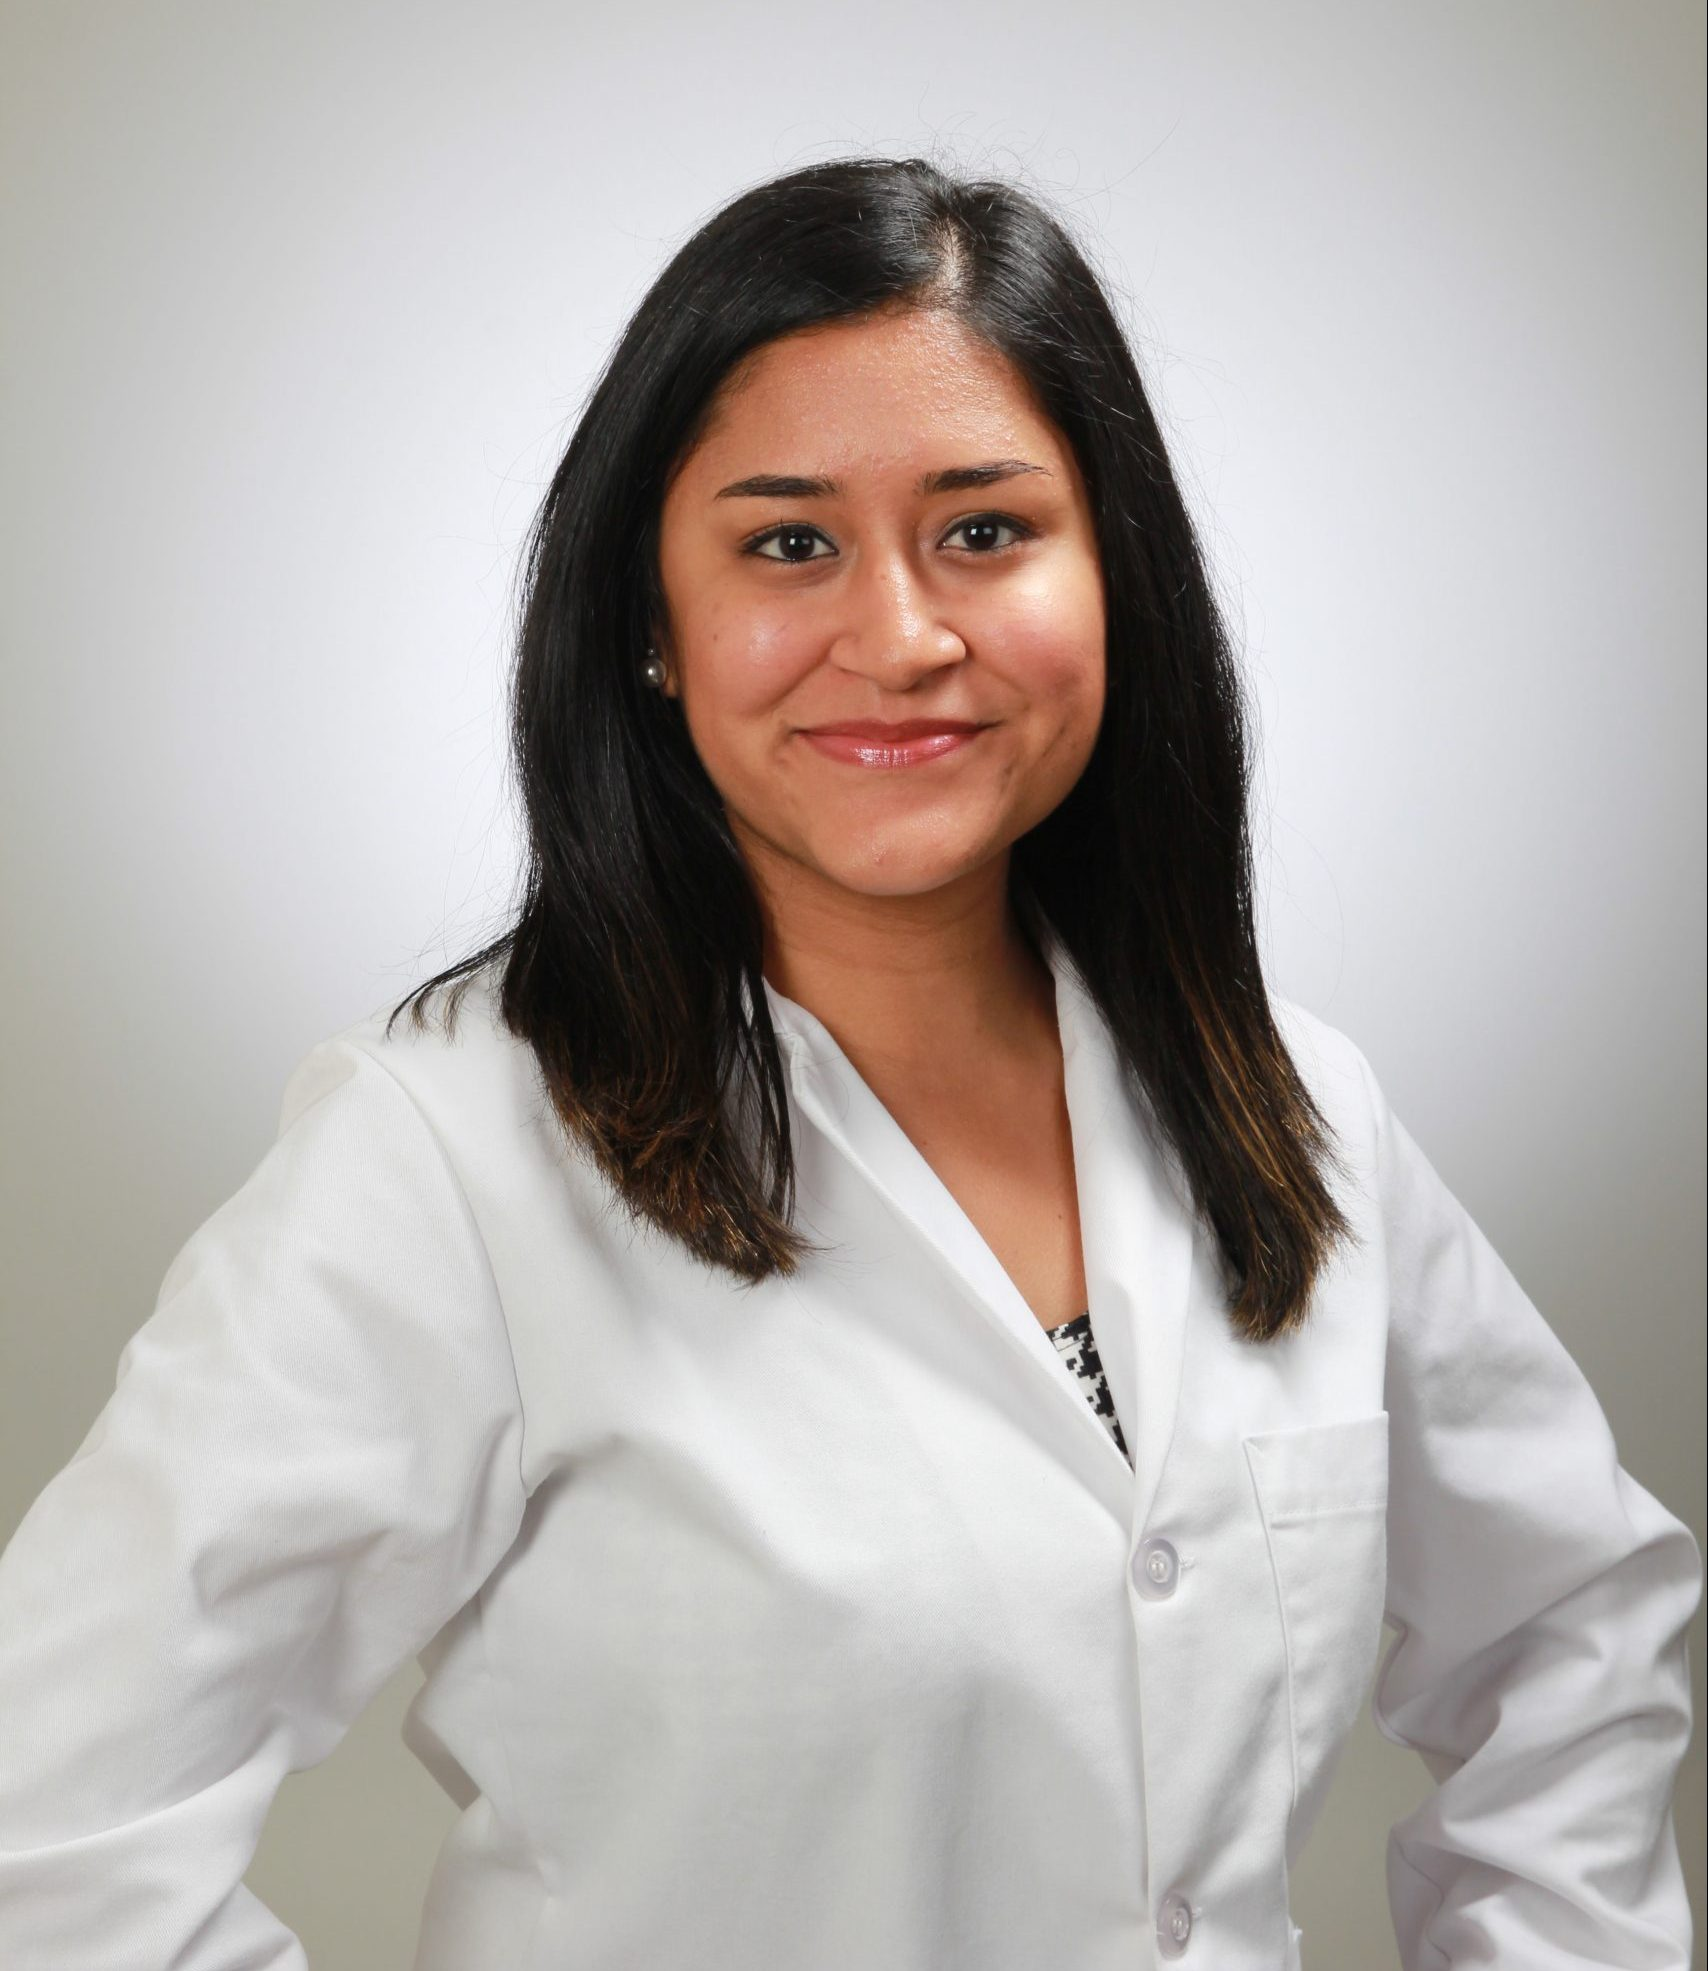 Tanisha Khurana - DMD Candidate Class of 2023, Roseman University College of Dental Medicine, ASDA Chapter Fundraising Chair, Pediatric Club Outreach Coordinator